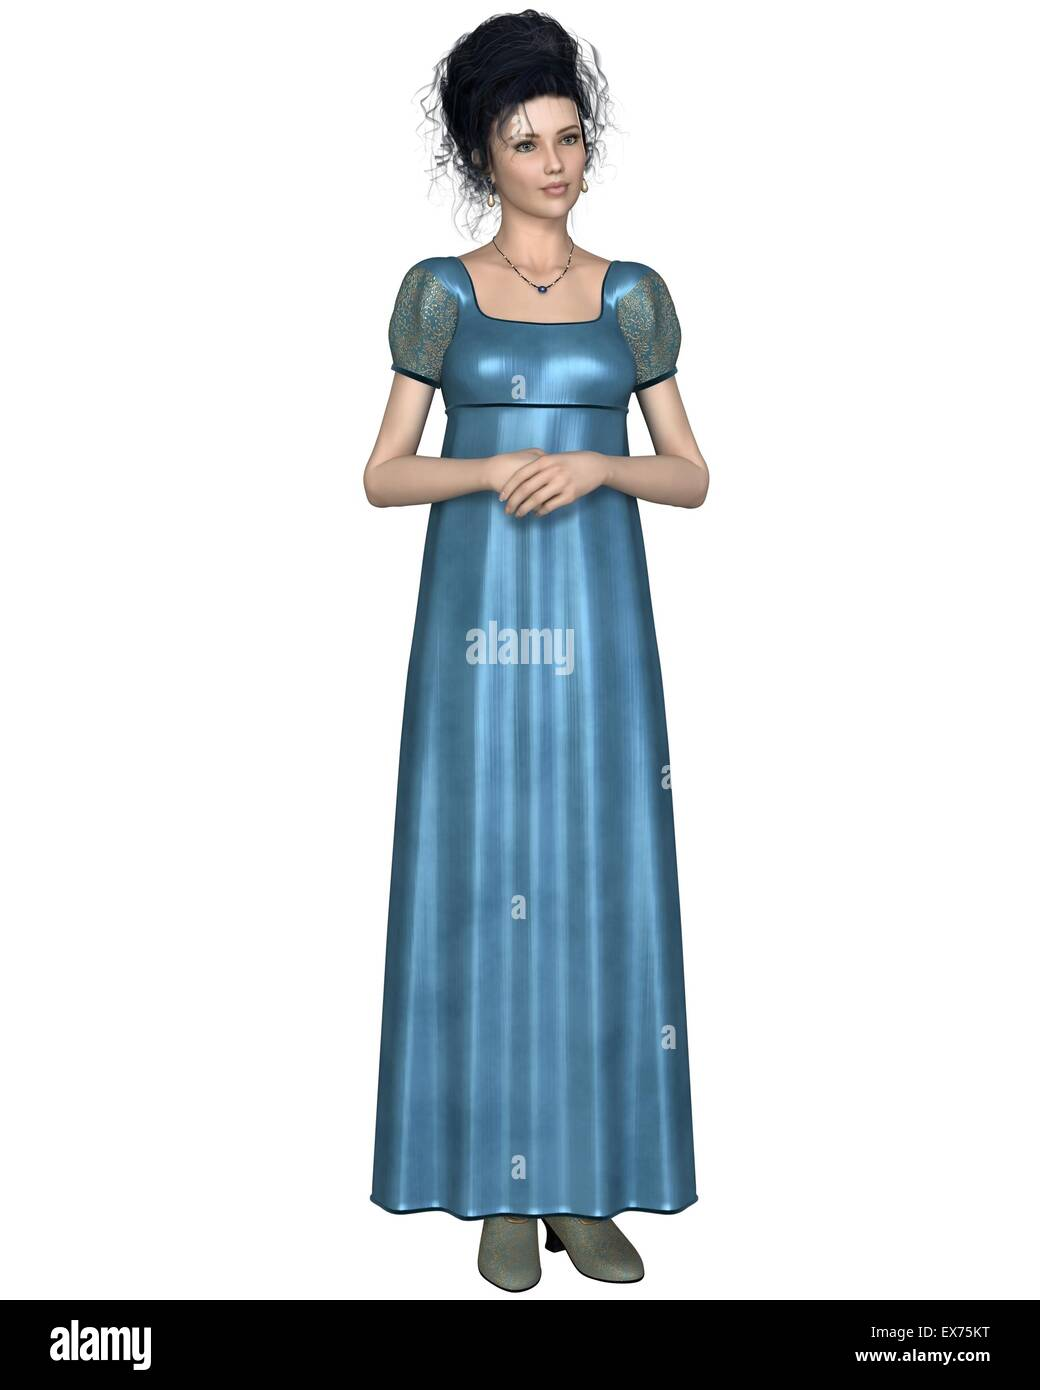 Regency Dress Stock Photos & Regency Dress Stock Images - Alamy